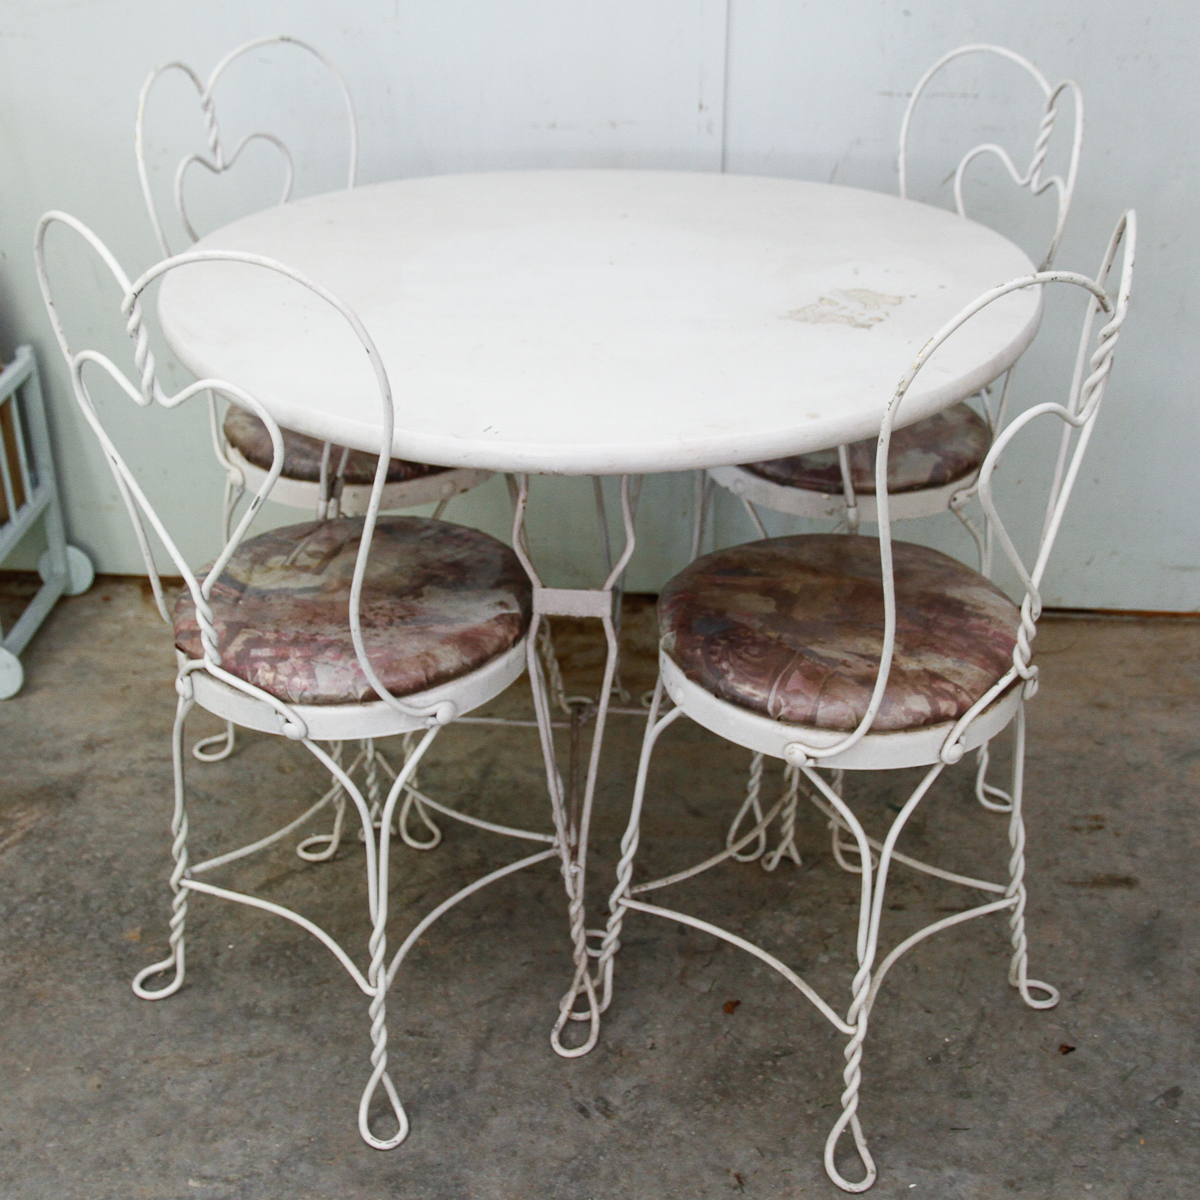 Ice Cream Table And Chairs Vintage Ice Cream Parlor Table And Chairs Ebth